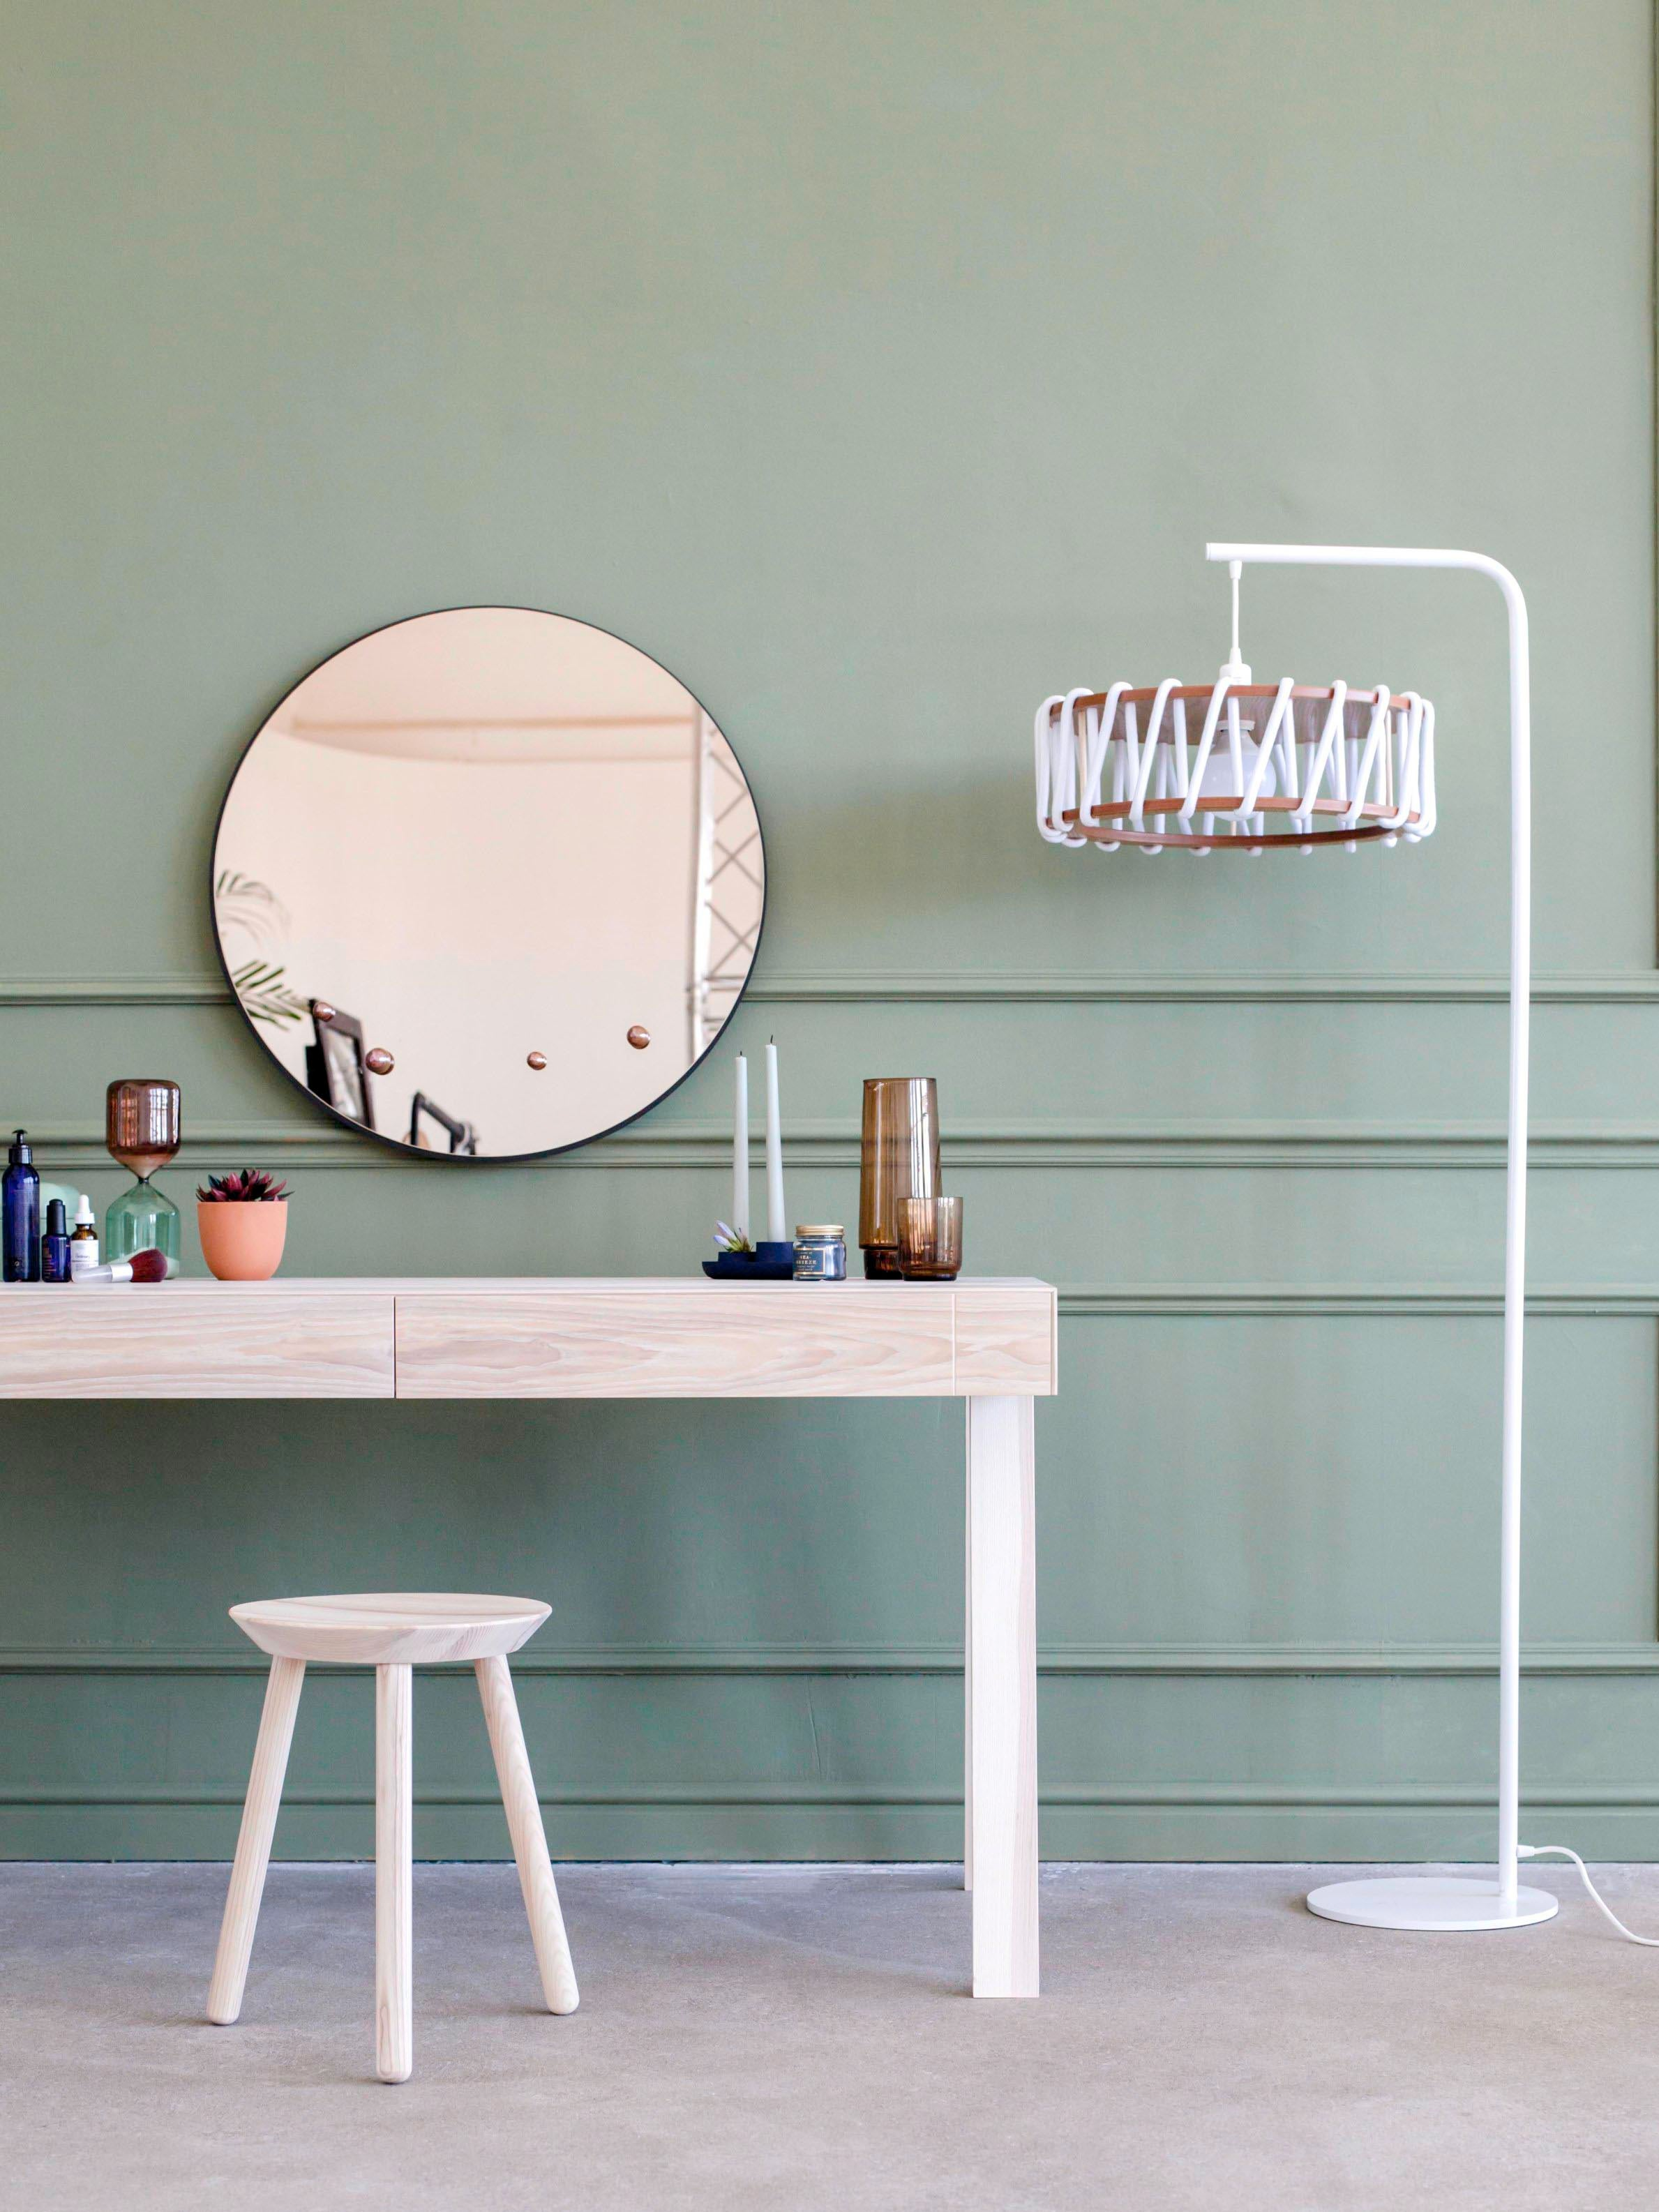 The Little-Known Furniture Brand Replacing My IKEA Obsession